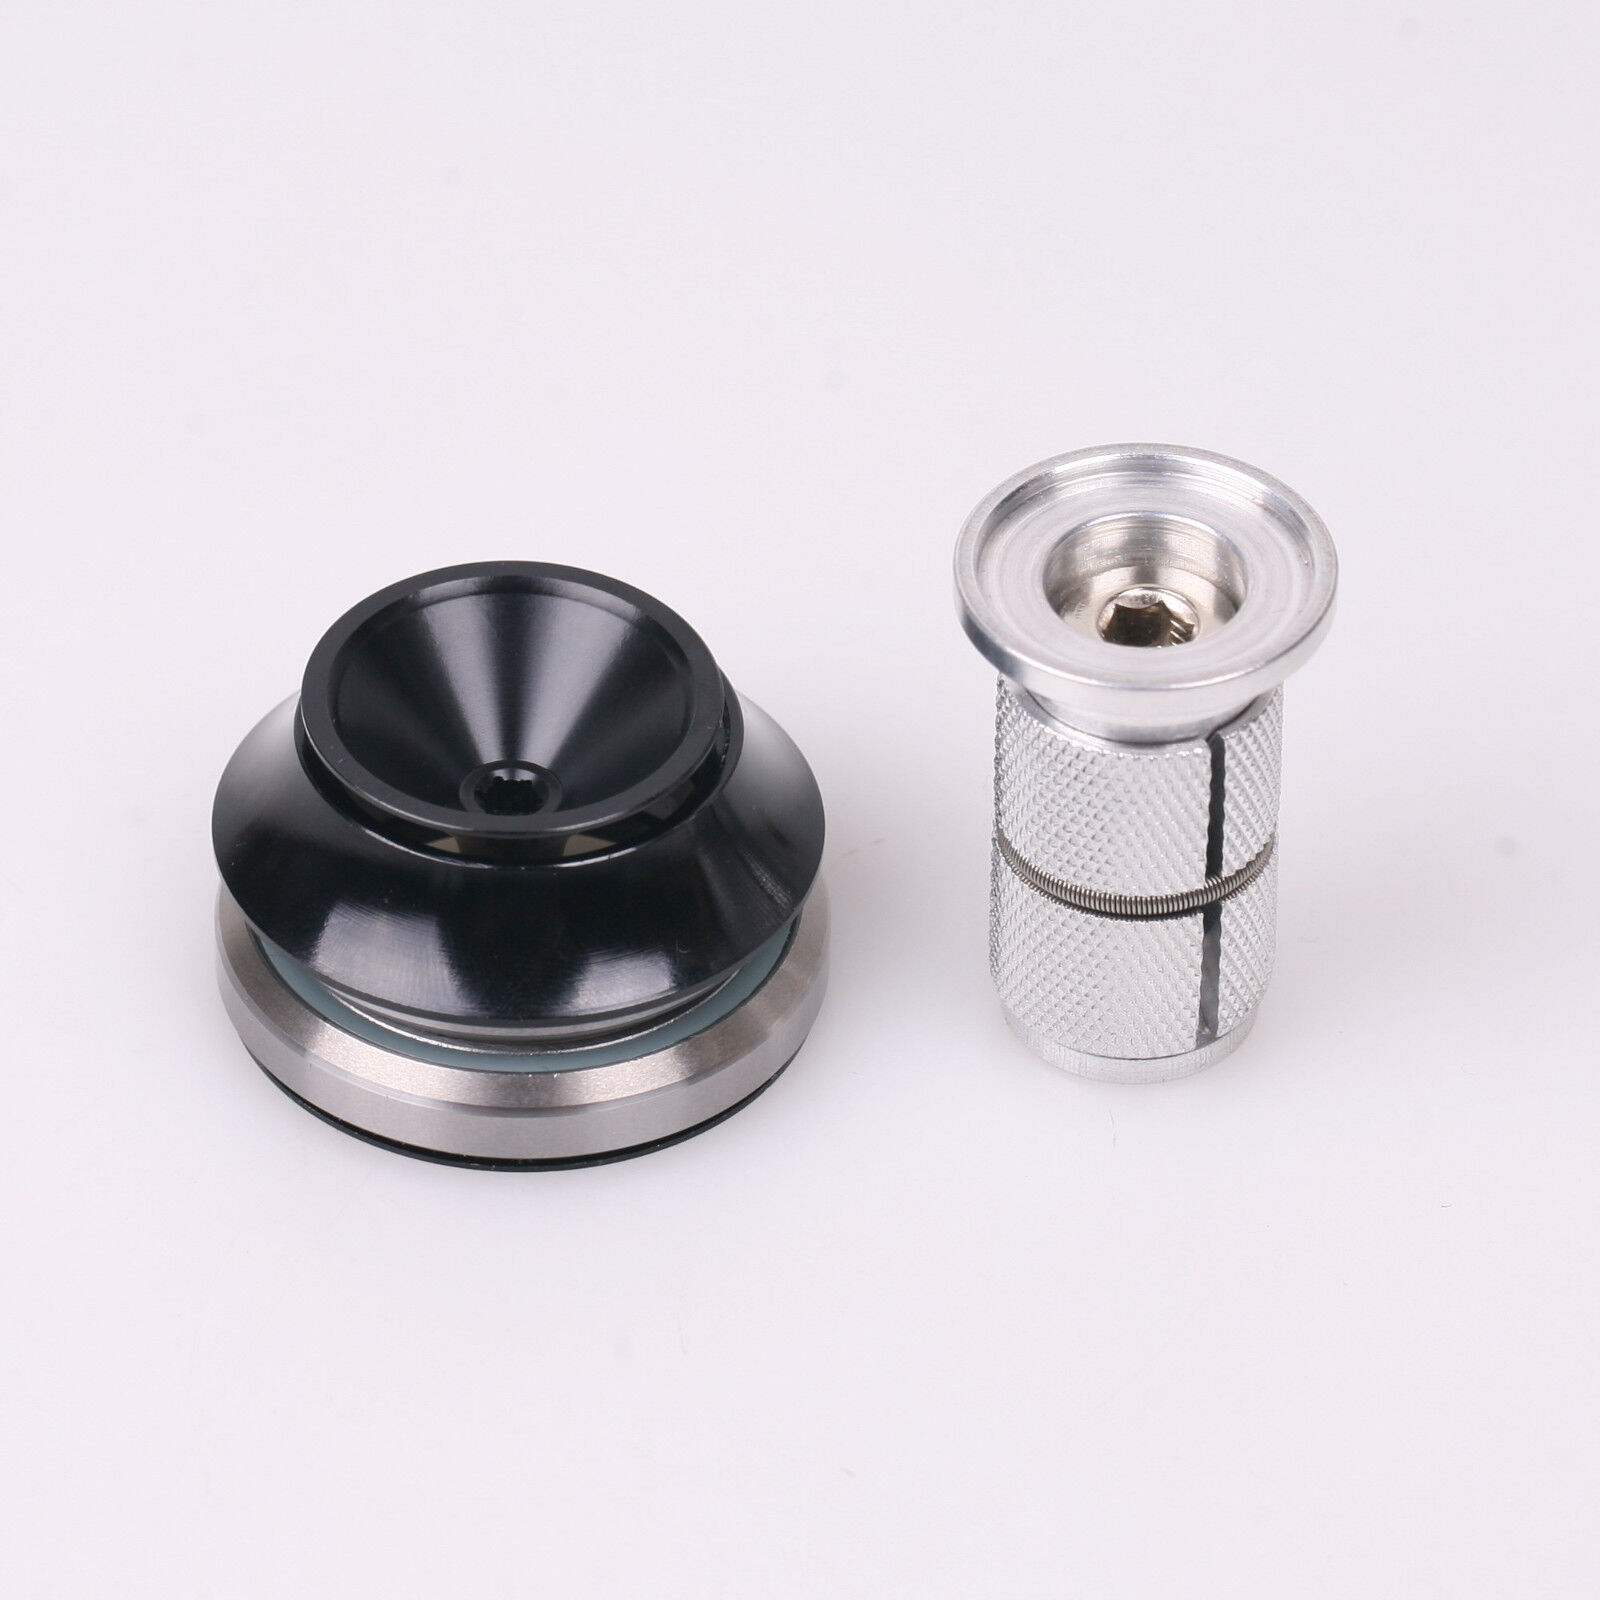 J&L 1-1 4 - 1-1 8 Ceramic Bearing Headset for for for Giant OverDrive OD 1-TCR Road Bike f98aa2